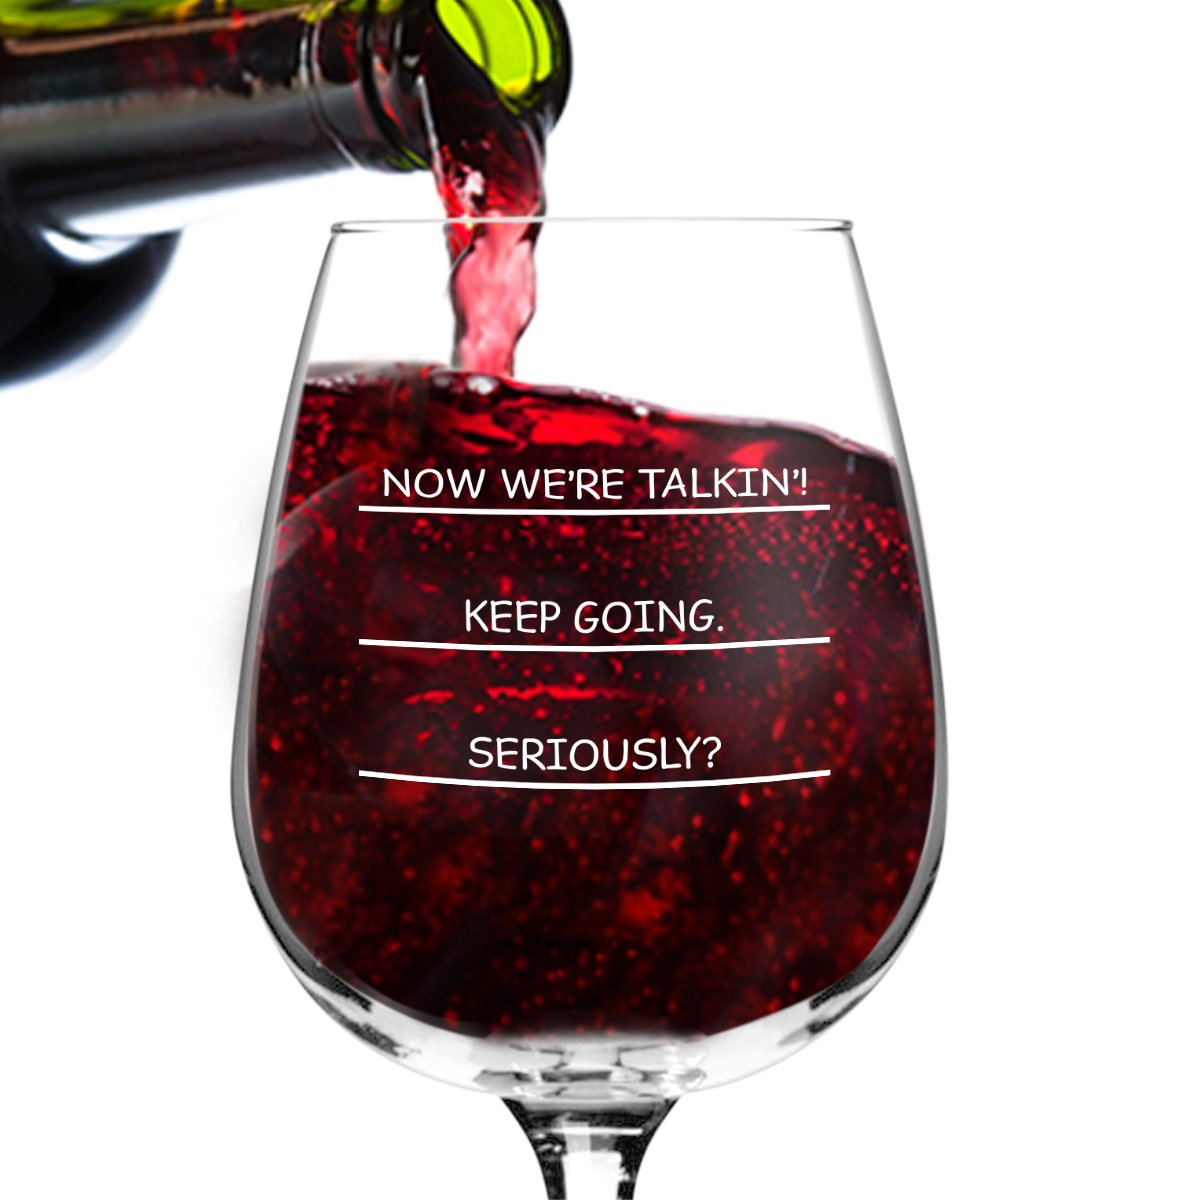 Seriously? I need more wine funny wine glass, 12.75 ounce, humorous, cool present idea for women, mom, daughter, wife, her, sister, coworker, or best friend